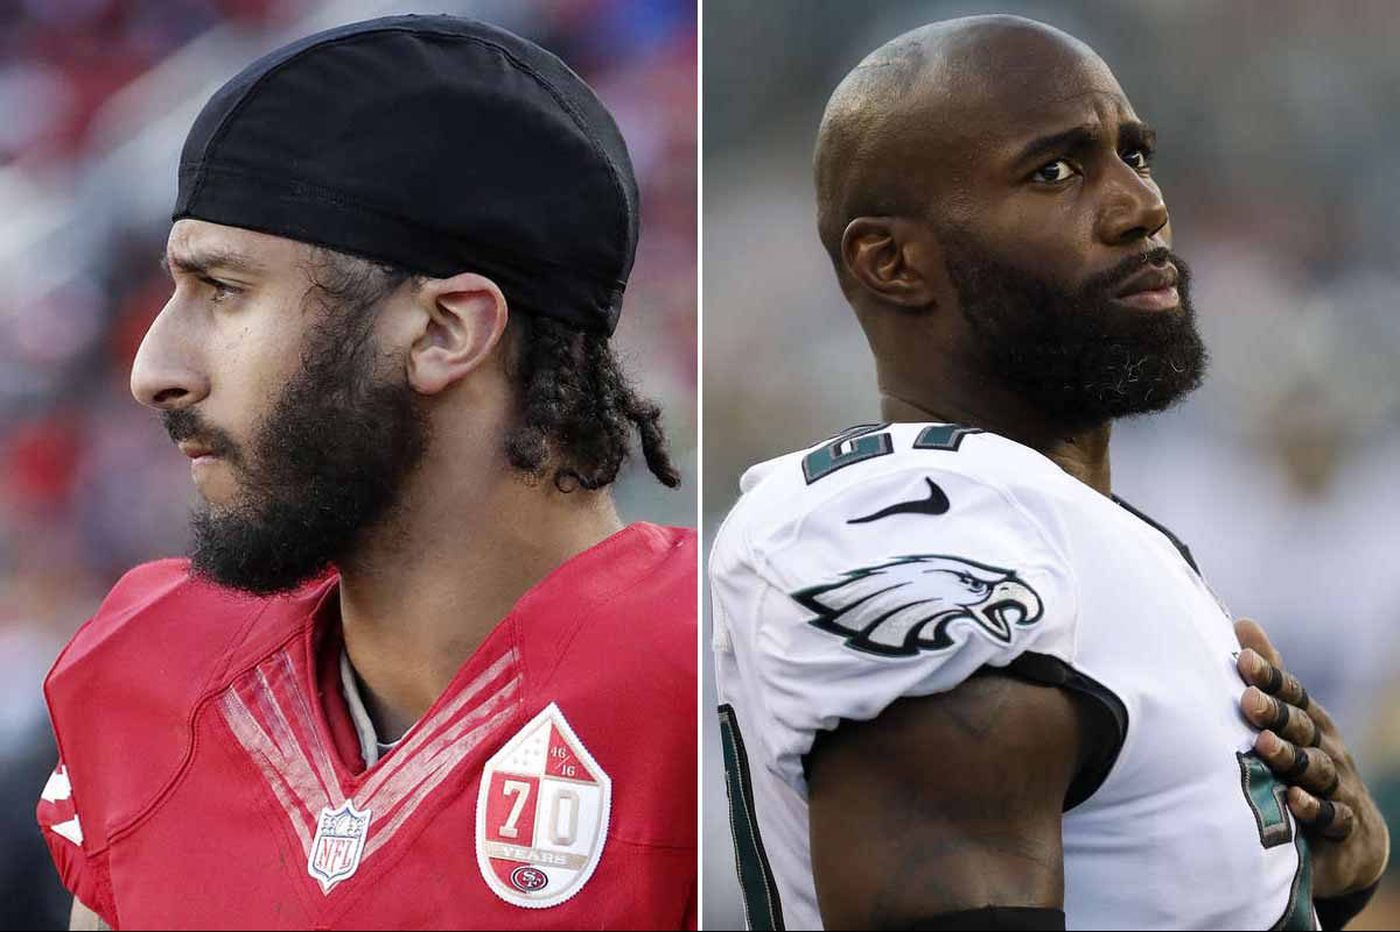 Colin Kaepernick and Eagles' Malcolm Jenkins, at odds, serve the greatest good | Marcus Hayes